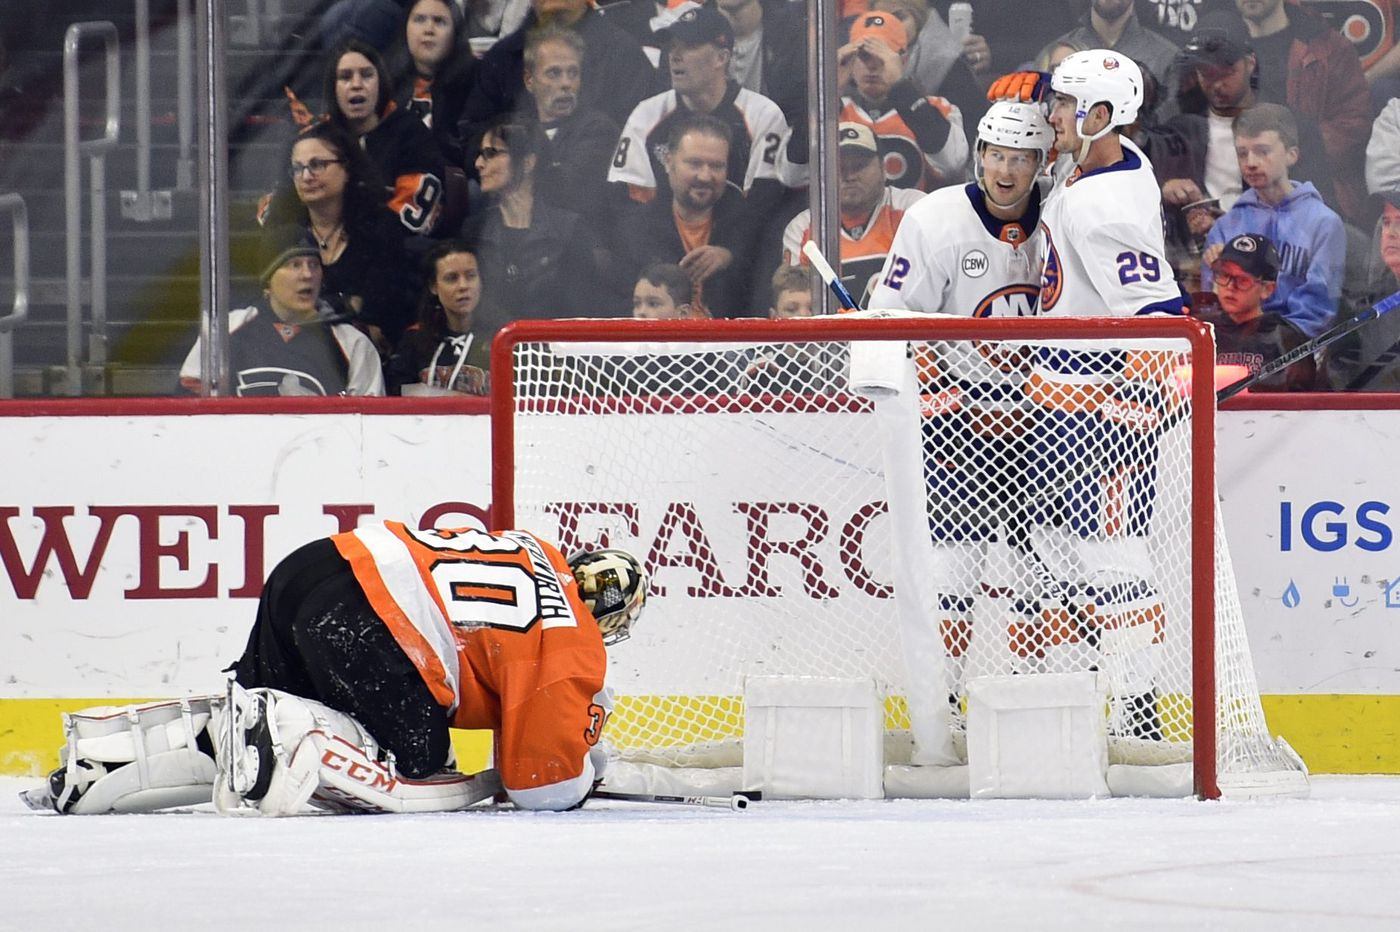 Flyers get blown out by Islanders as house of horrors continue ahead of road trip